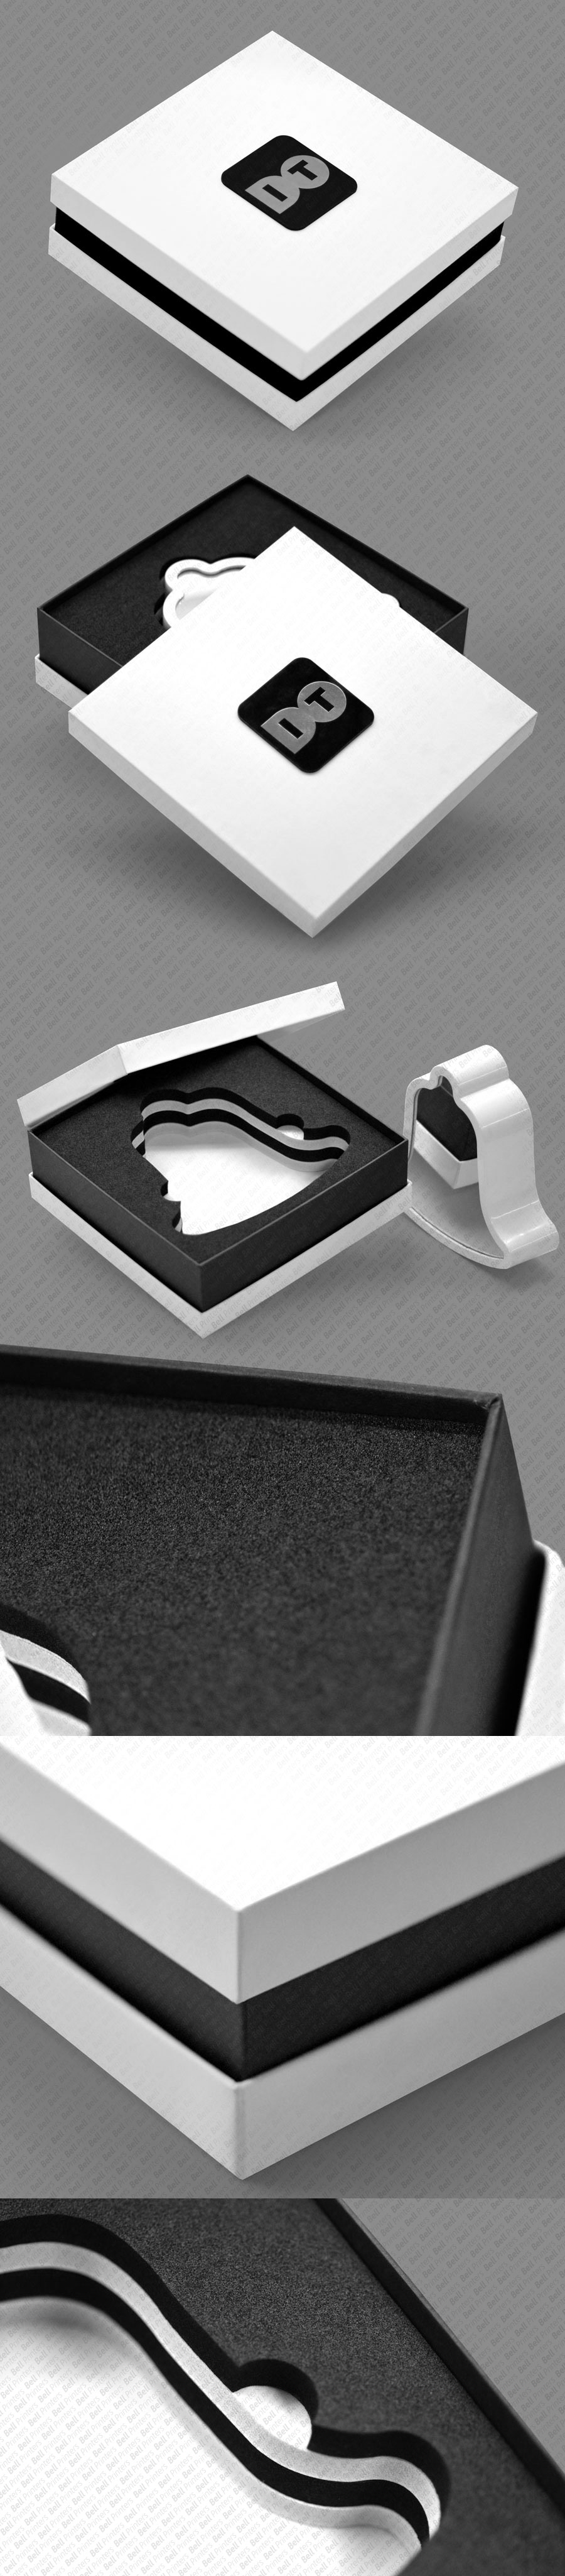 printed packaging Boxes | Luxury  gift boxes with logo Supplier uk